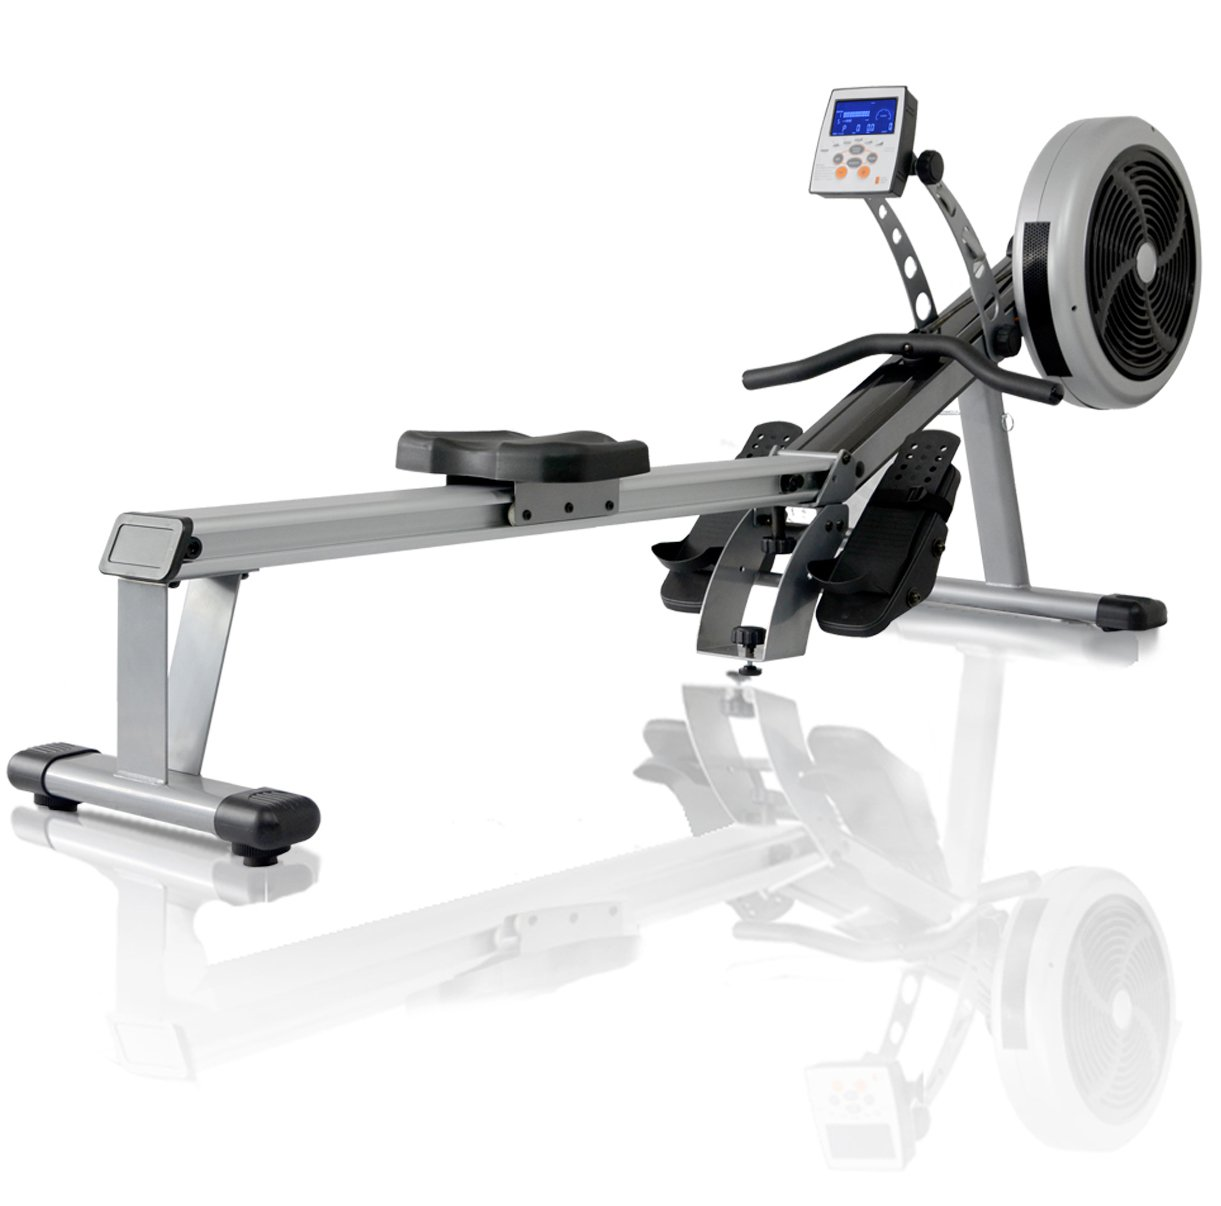 jtx freedom rowing machine